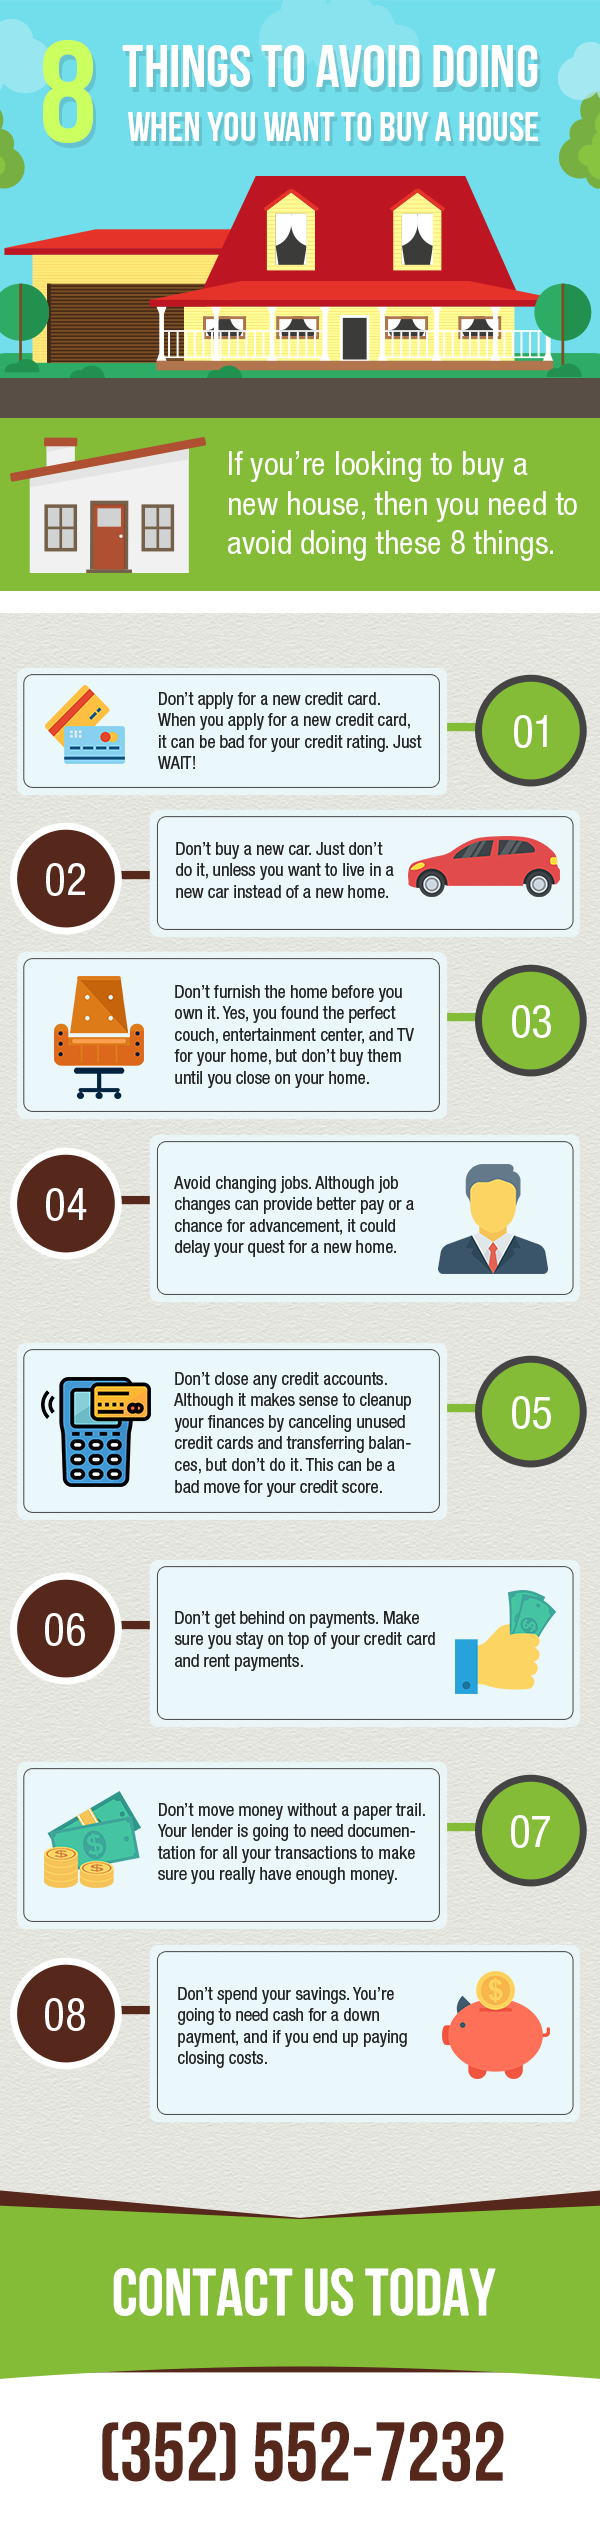 8-things-to-avoid-when-buying